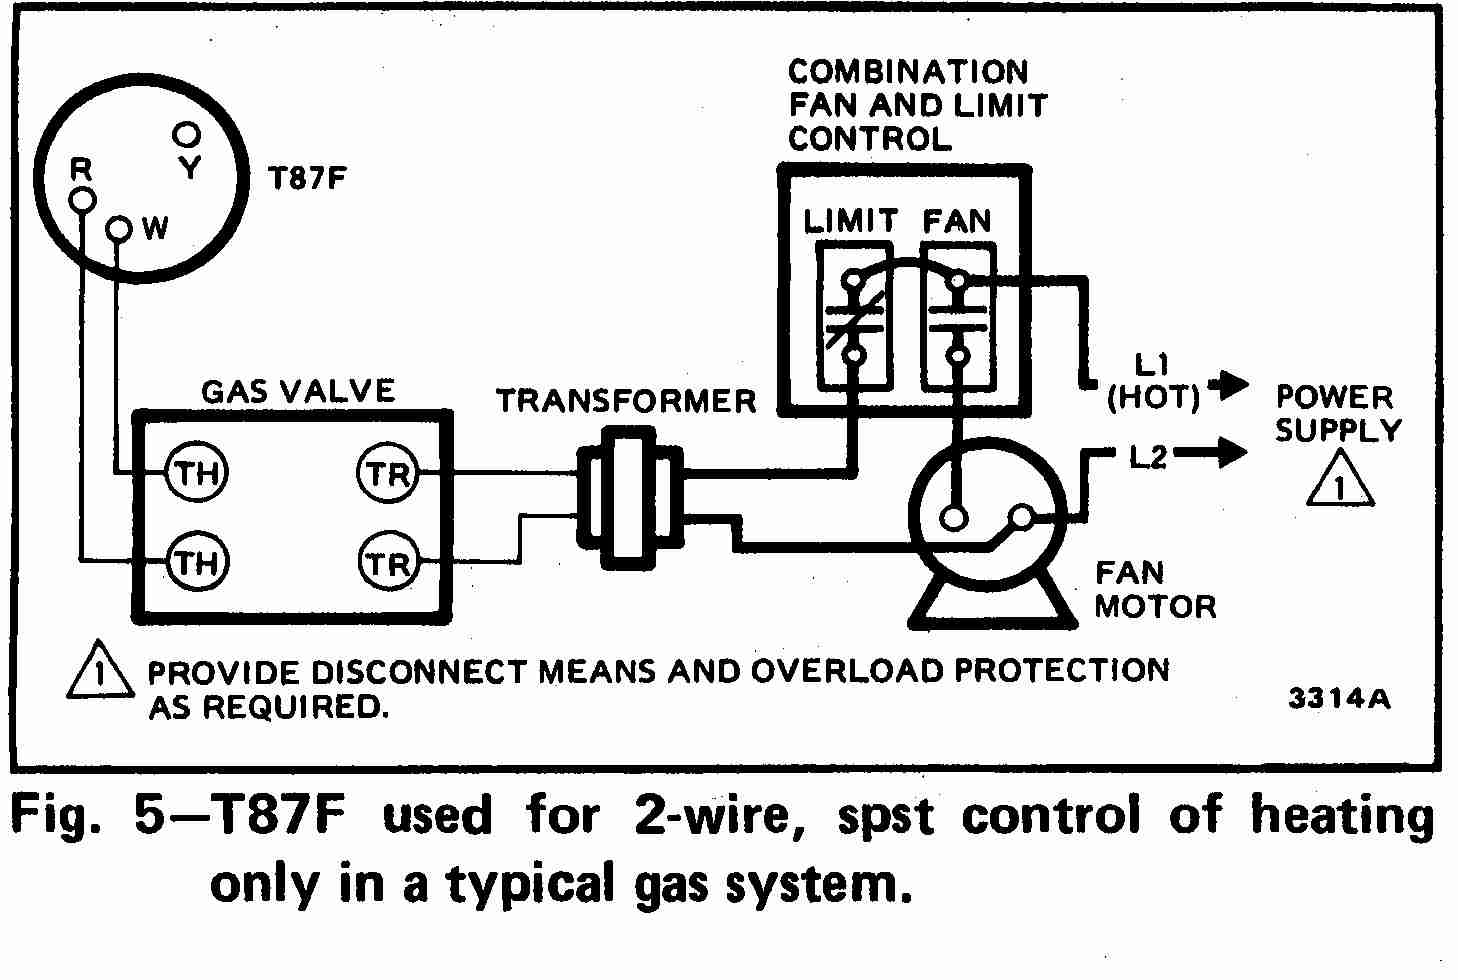 TT_T87F_0002_2Wg_DJF room thermostat wiring diagrams for hvac systems  at suagrazia.org